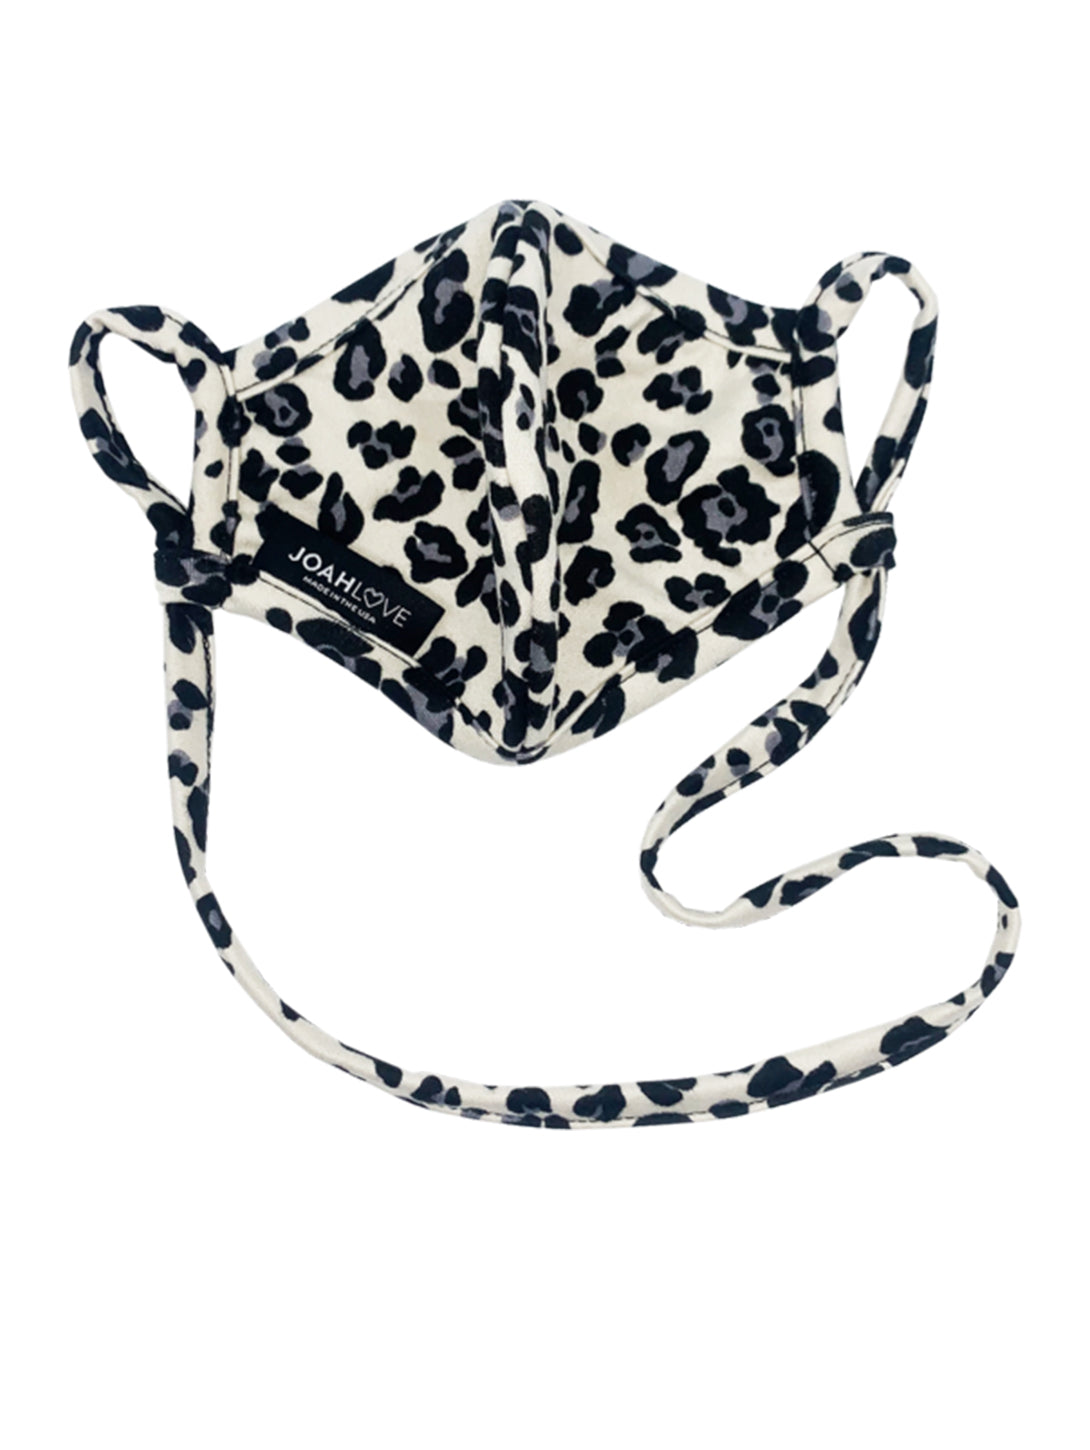 Adult Infinity Strap Mask - Cheetah-JOAH LOVE-Over the Rainbow